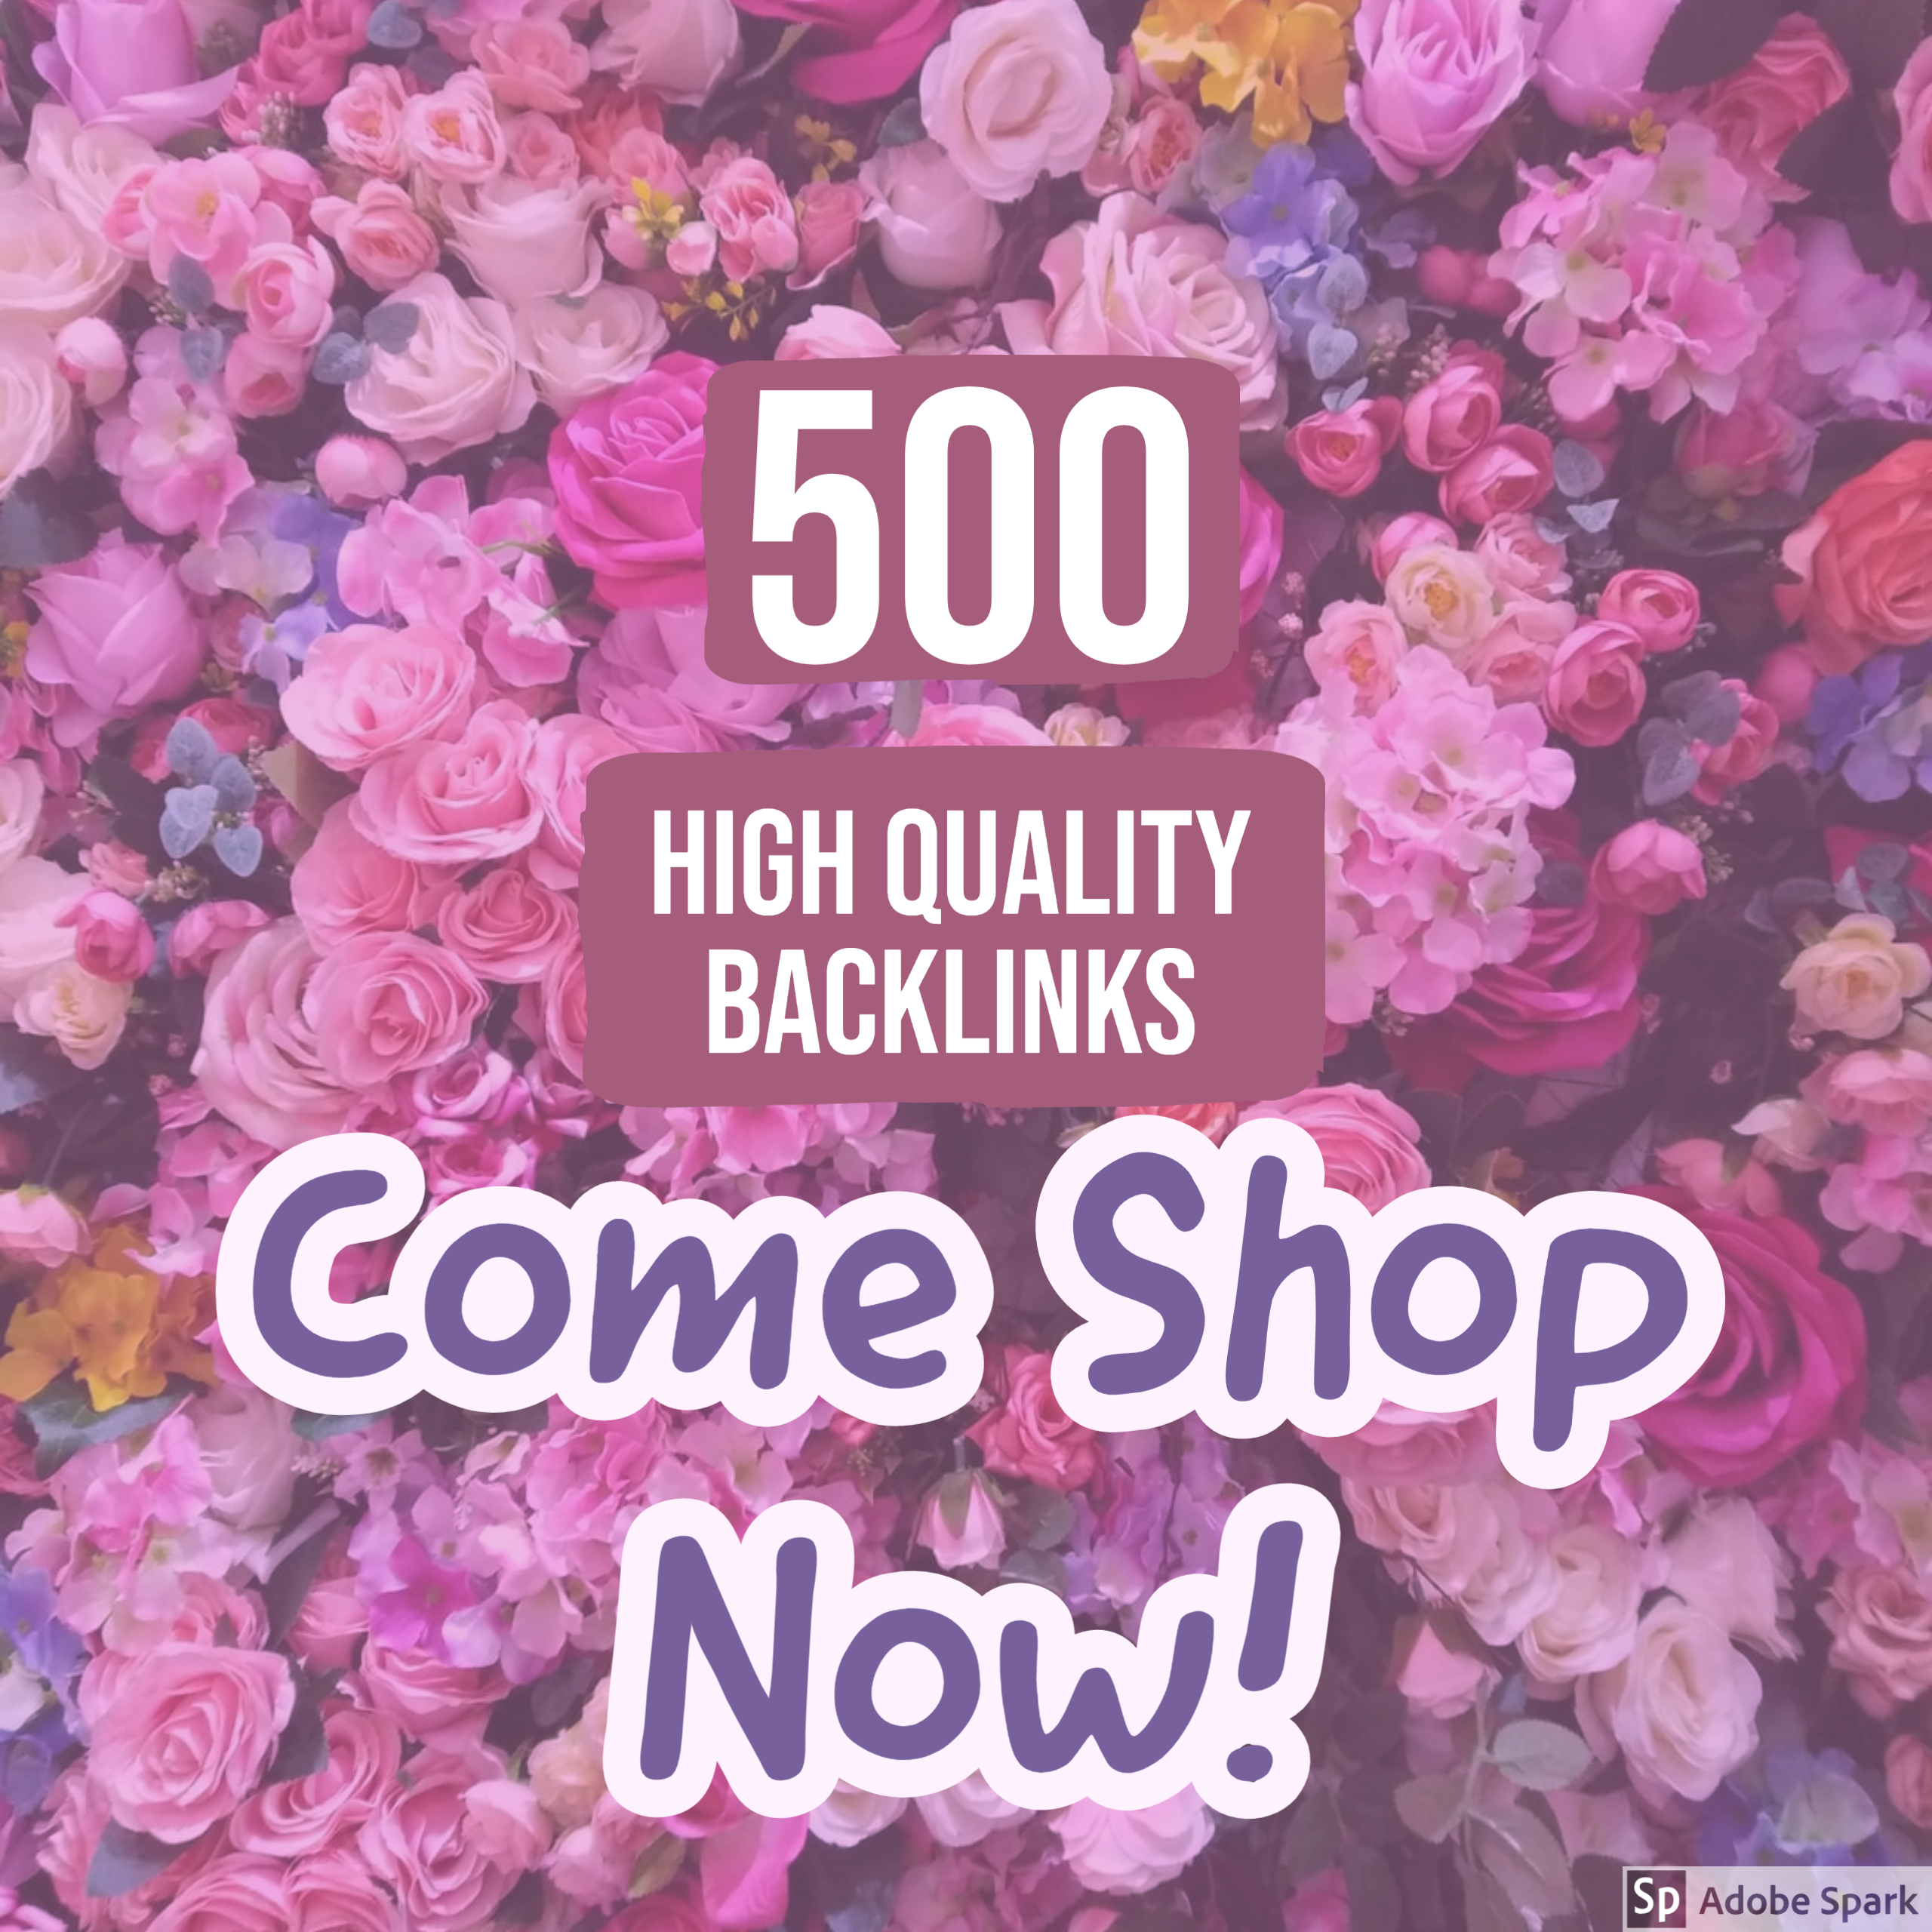 I Will Skyrocket Your Website With 500 High Quality Backlinks